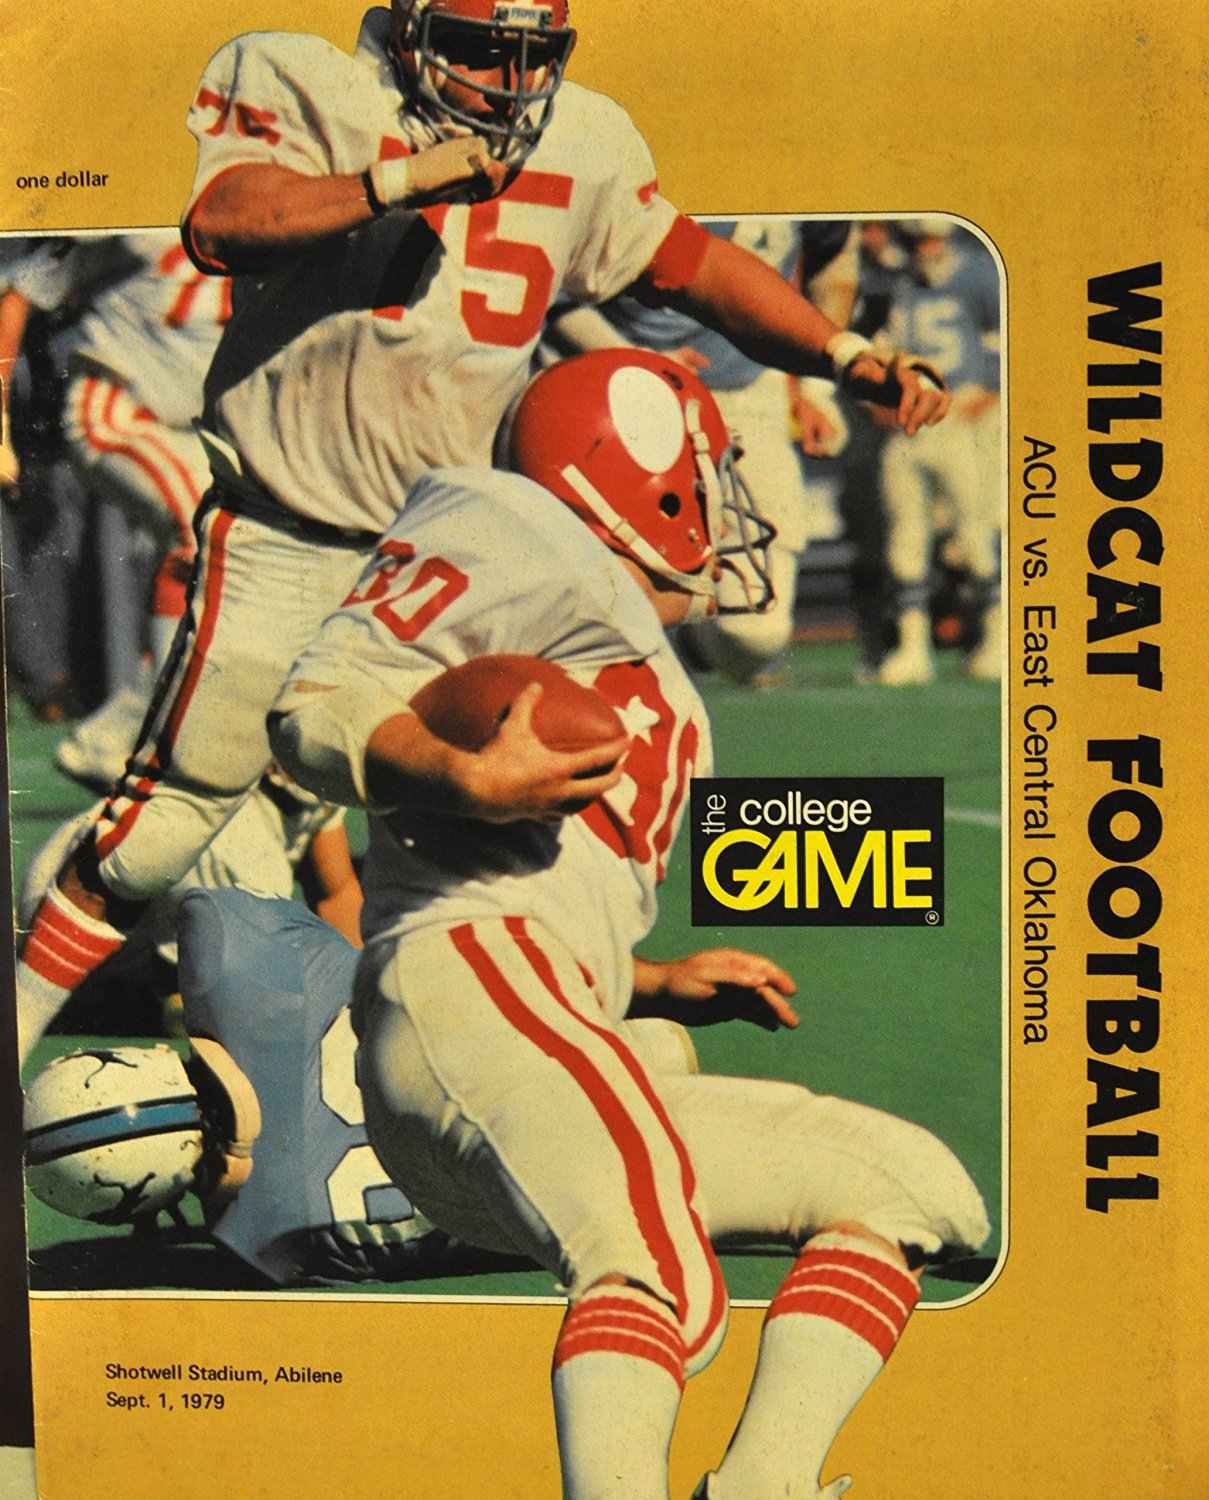 Sports Collectibles: The College Game ACU vs. East Central Oklahoma Football Pr..., September 1, 1979